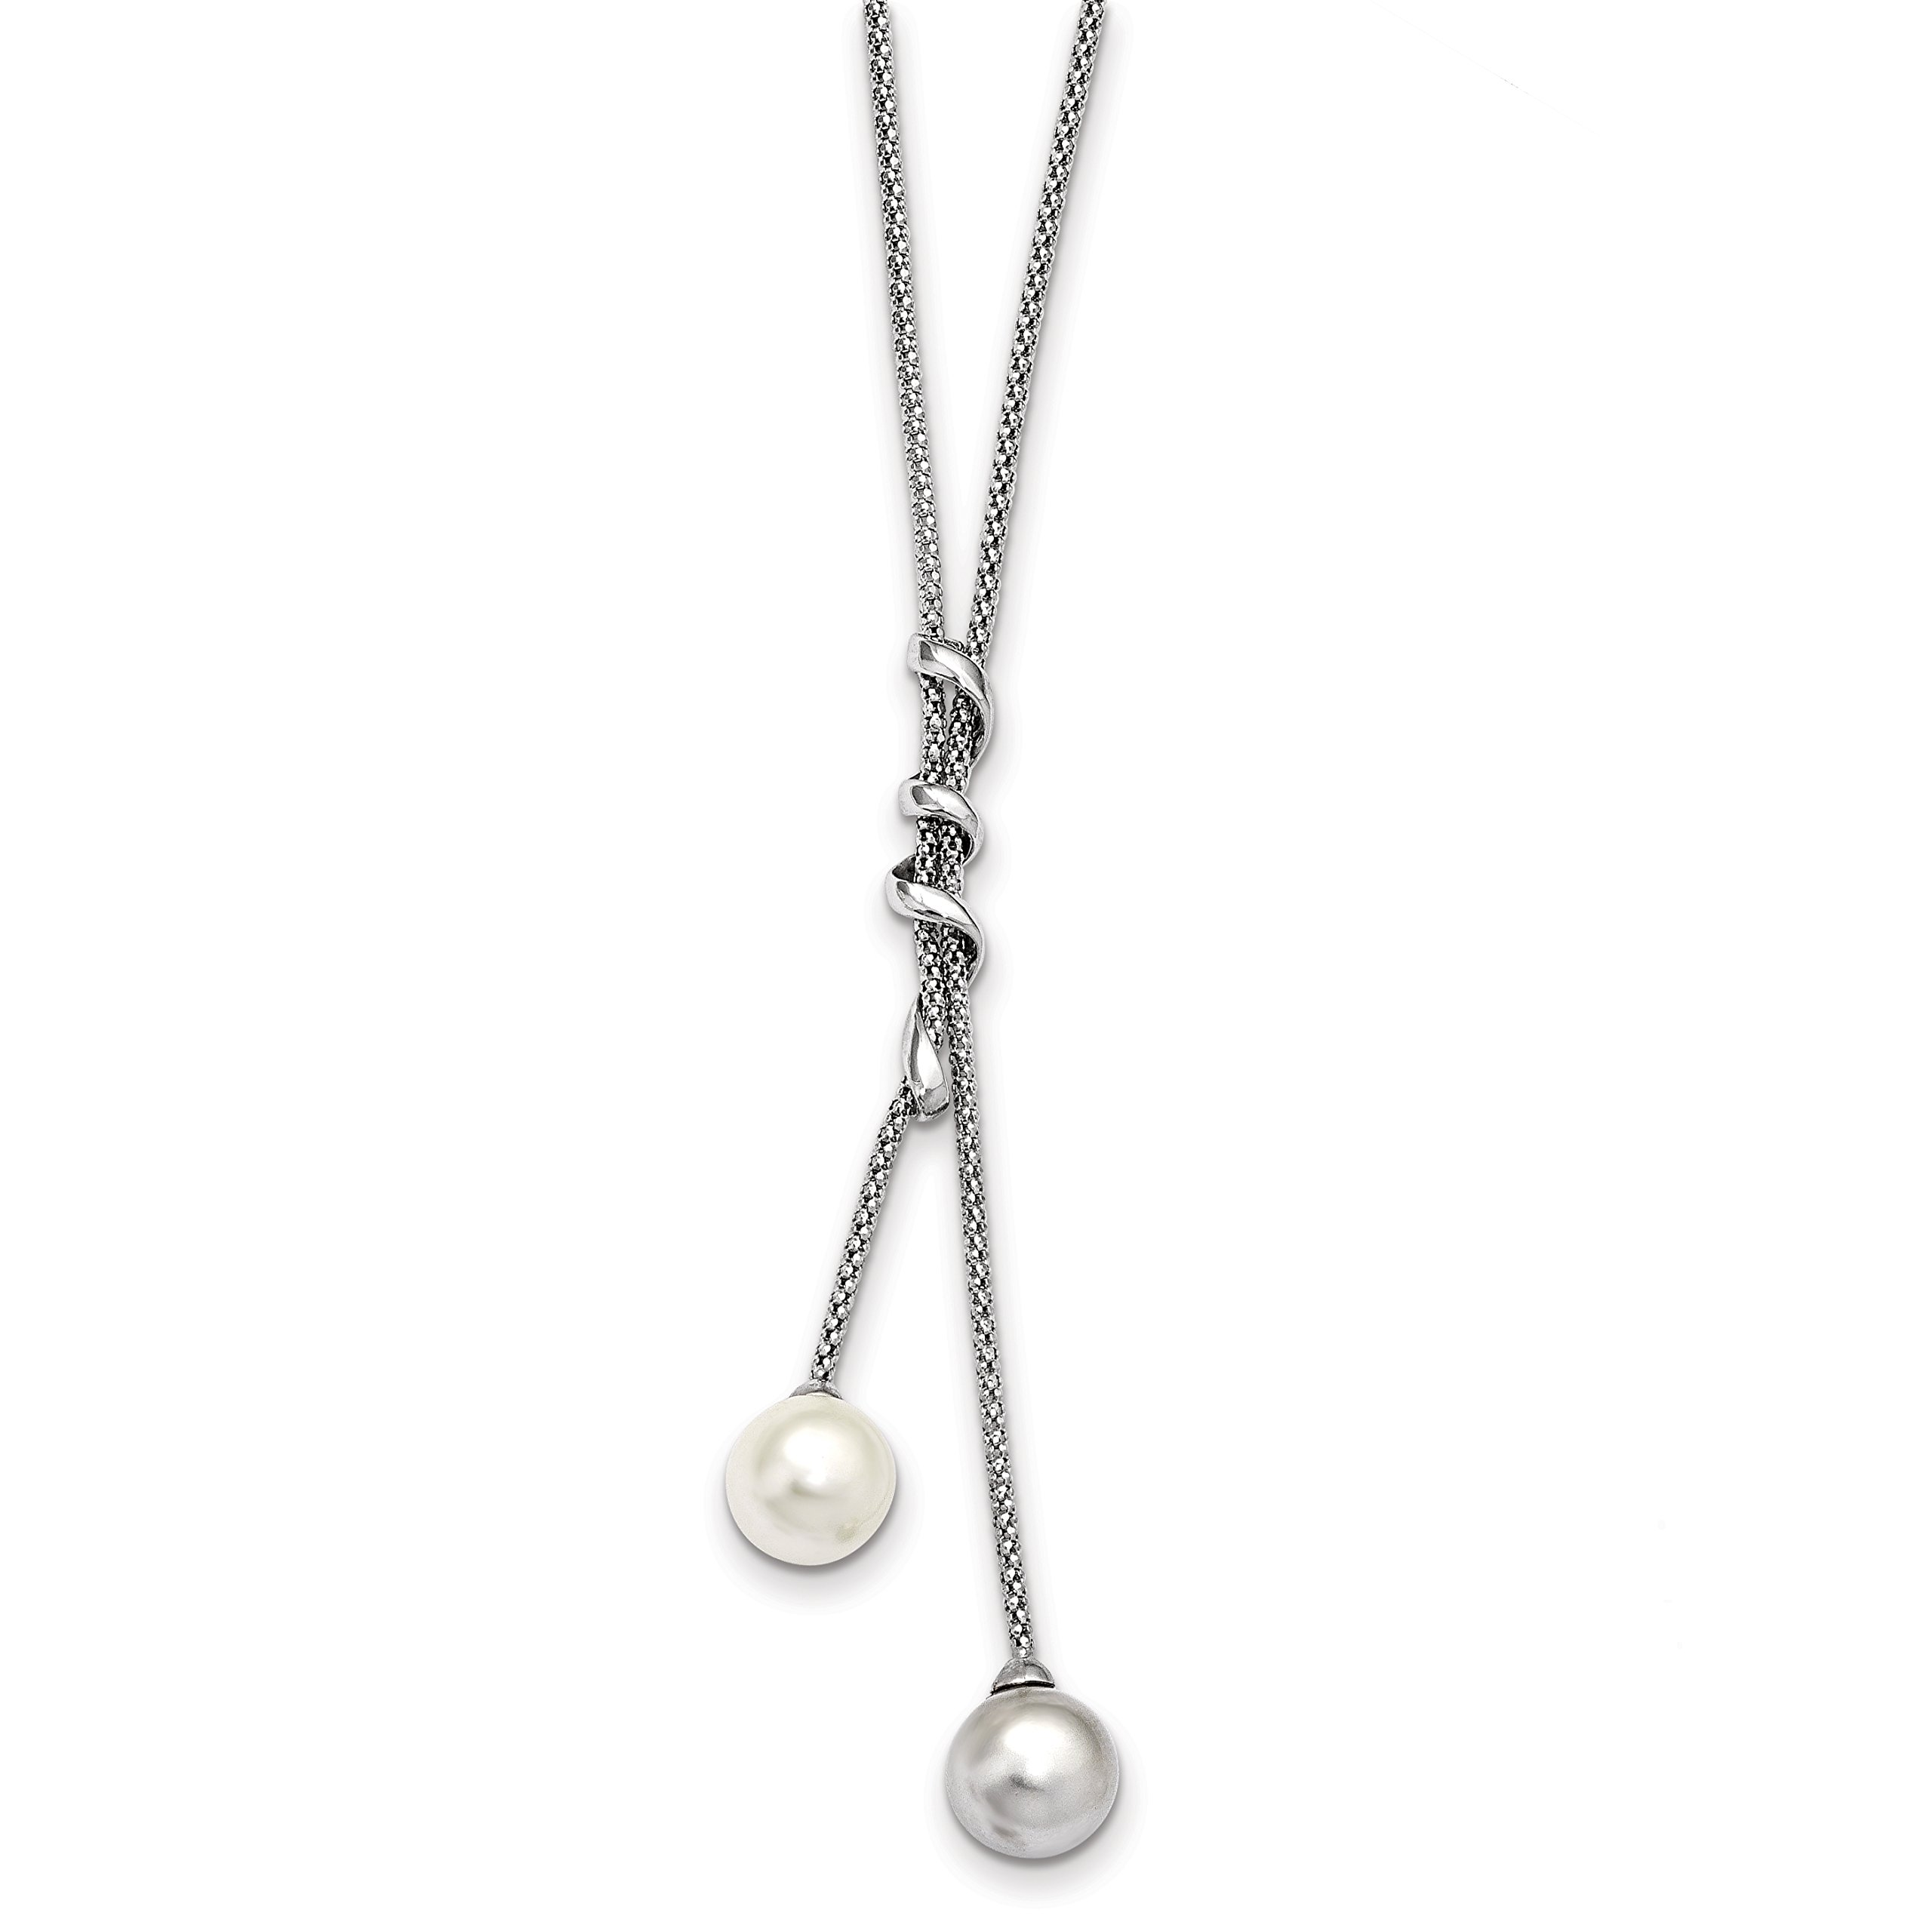 ICE CARATS 925 Sterling Silver Majestick 11mm White Grey Sea Shell Mermaid Nautical Jewelry Pearl Chain Necklace Majestik Fine Jewelry Gift Set For Women Heart by ICE CARATS (Image #1)